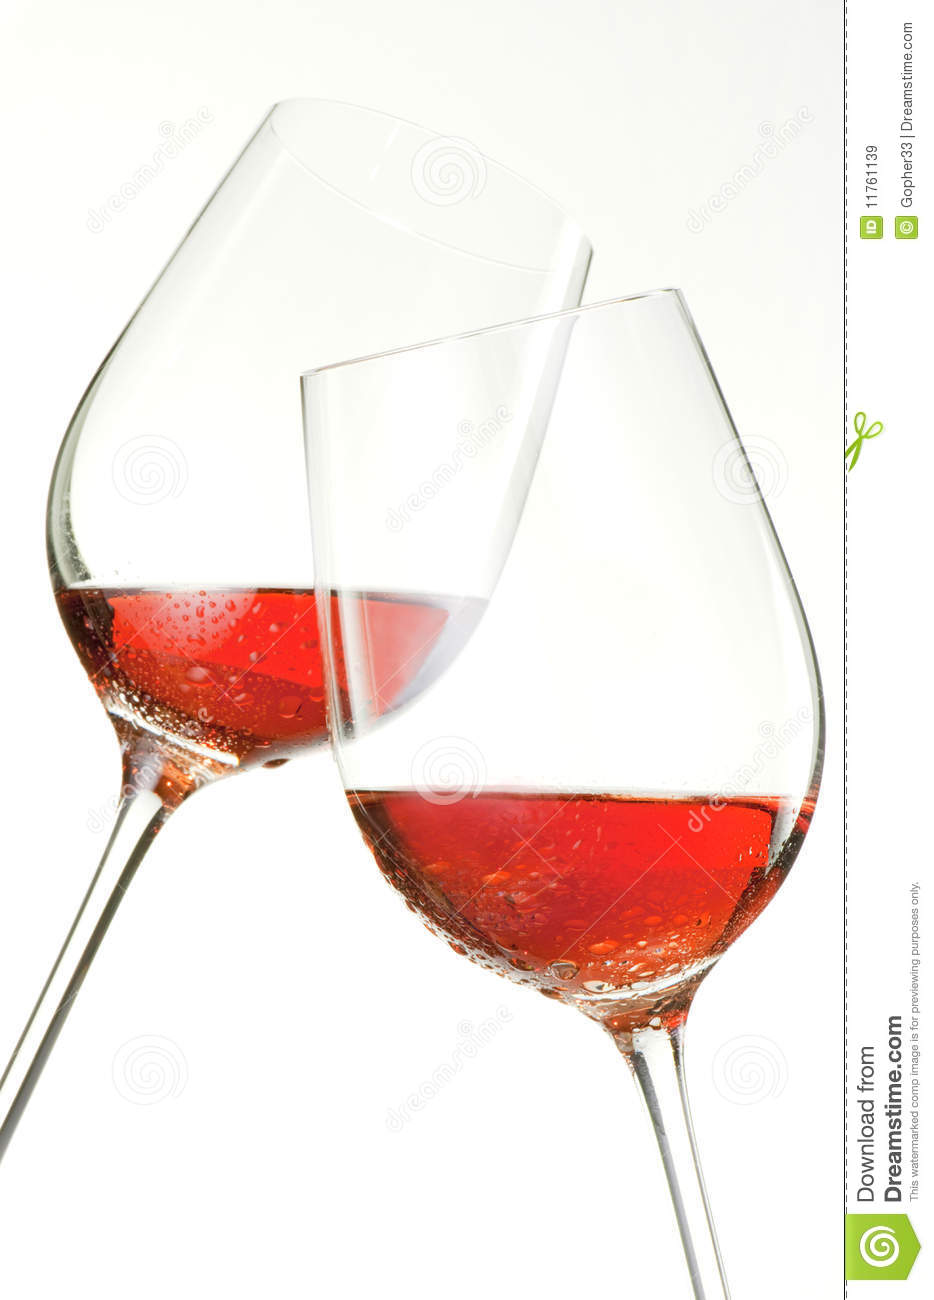 Clinking wine glasses clipart.